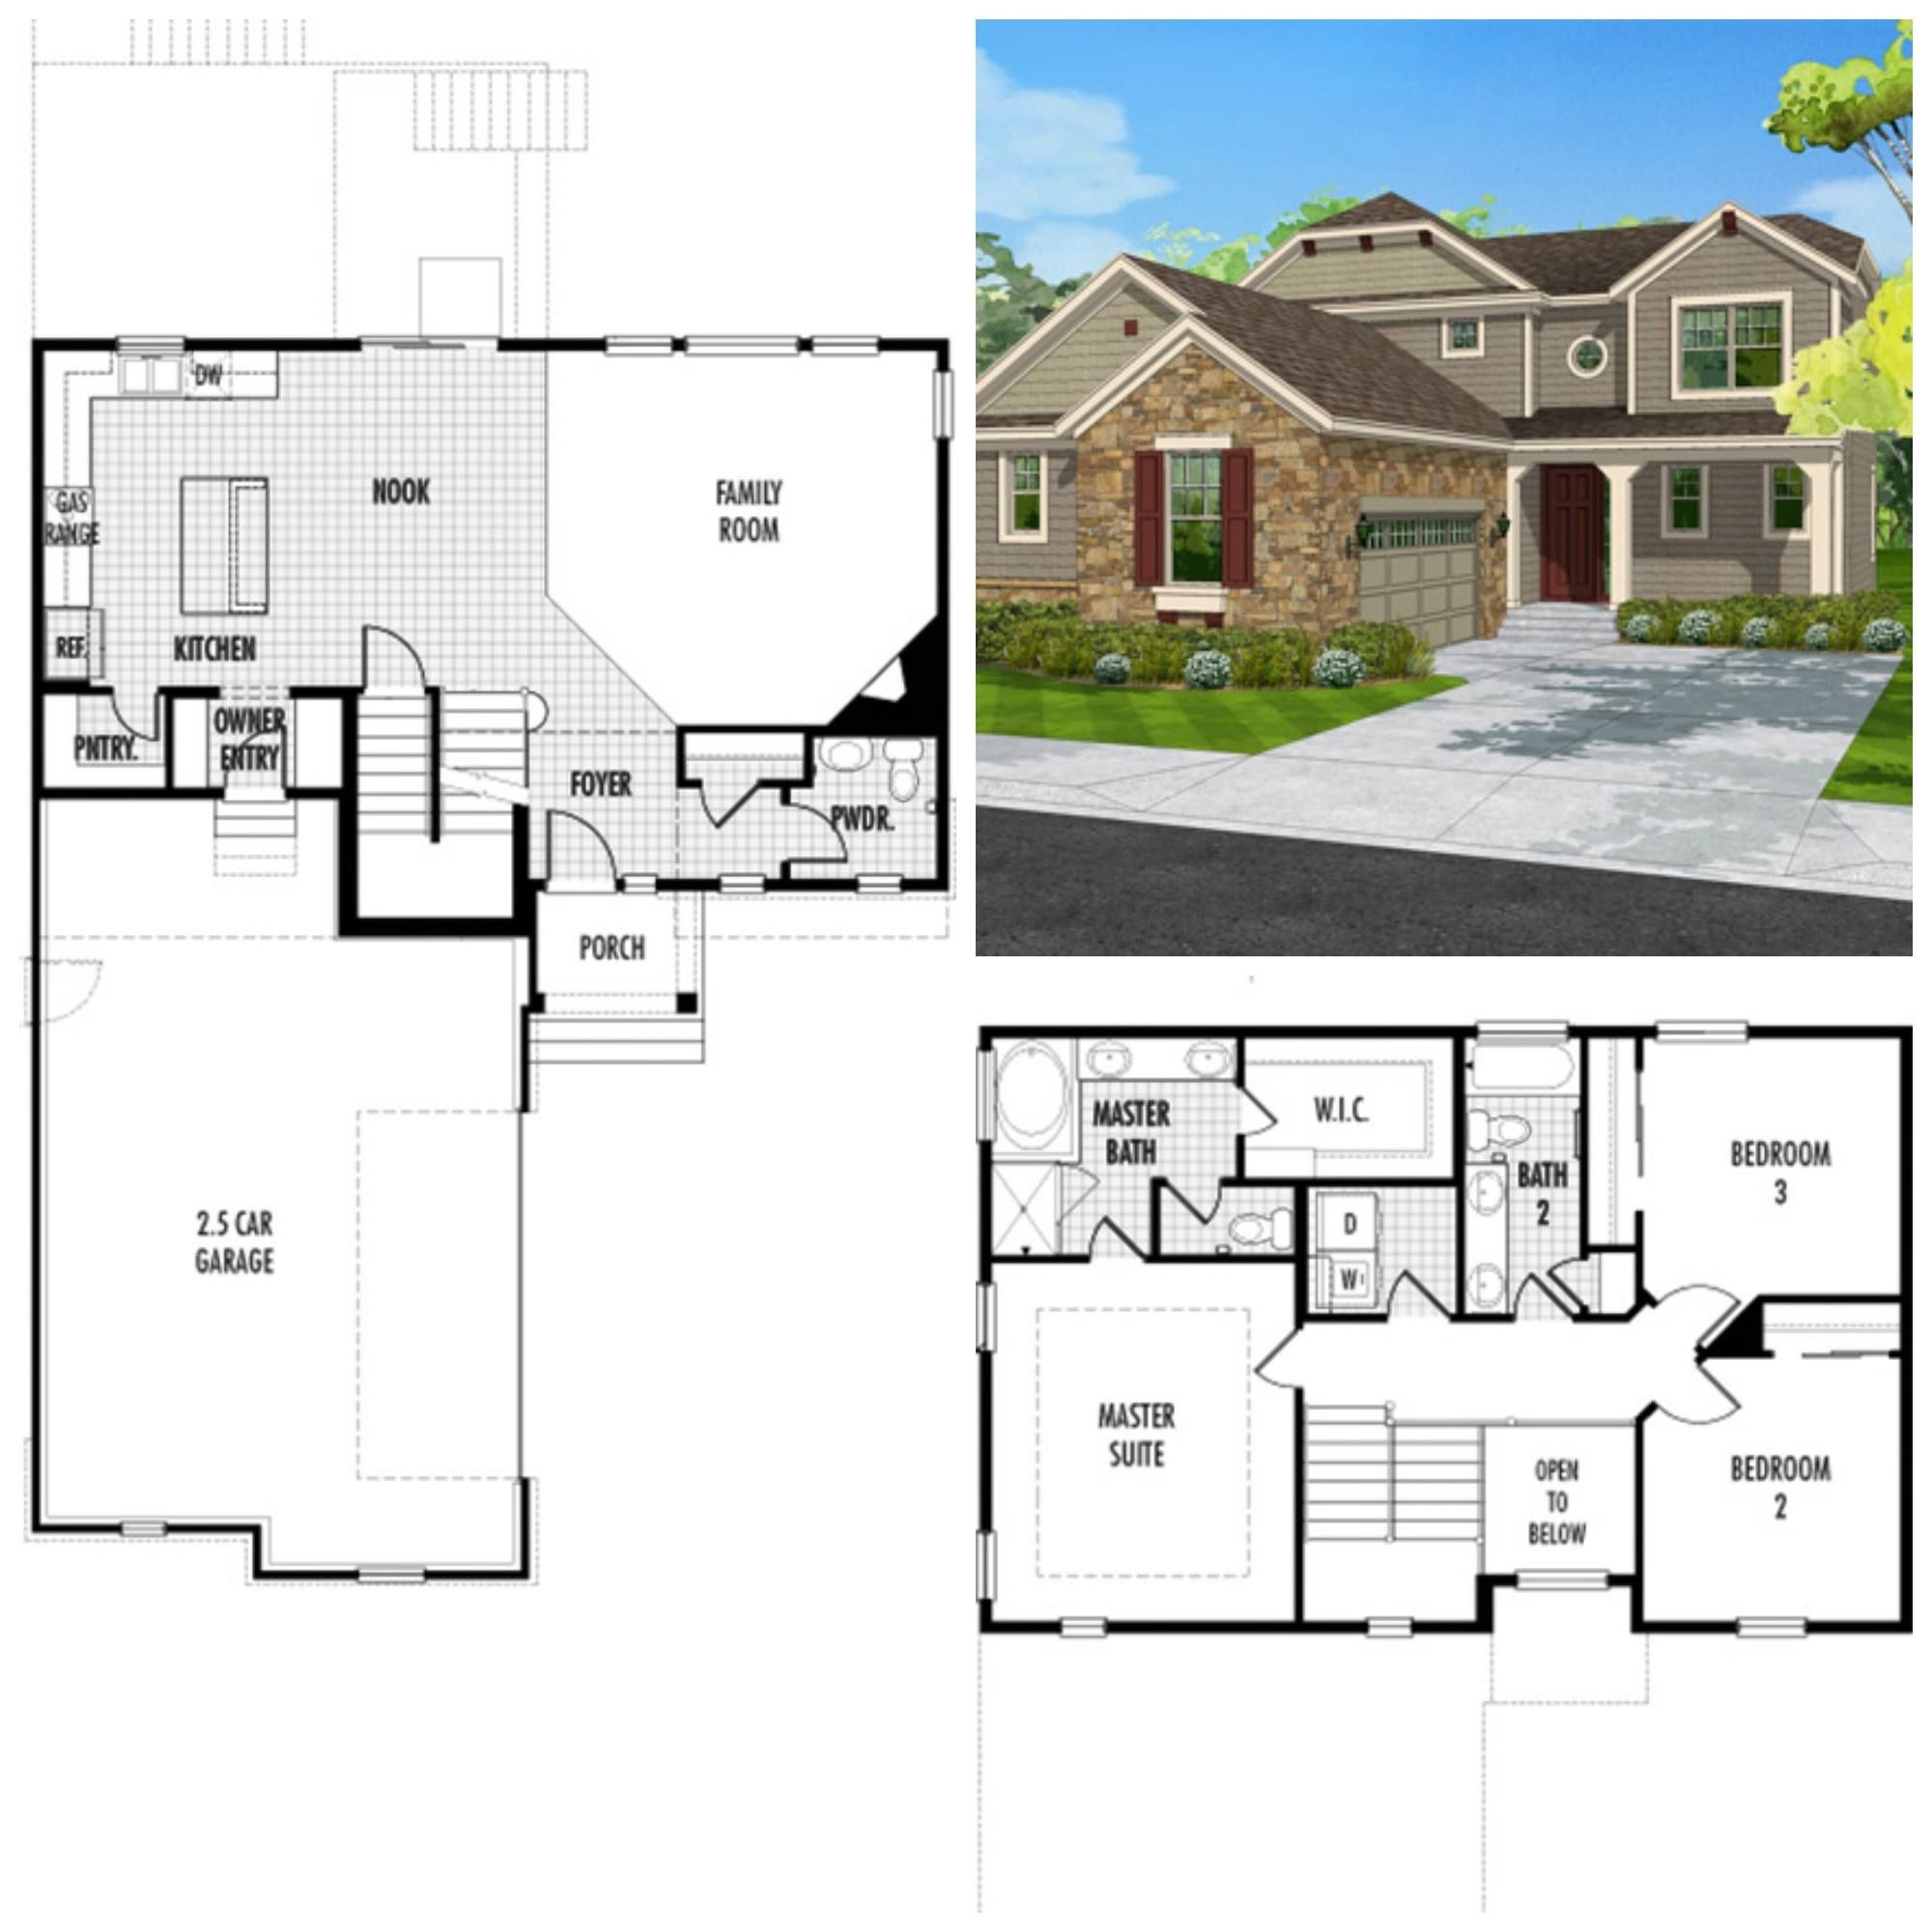 Pin By Lennar On Dream House Floor Plans Home Design Plans House Plans